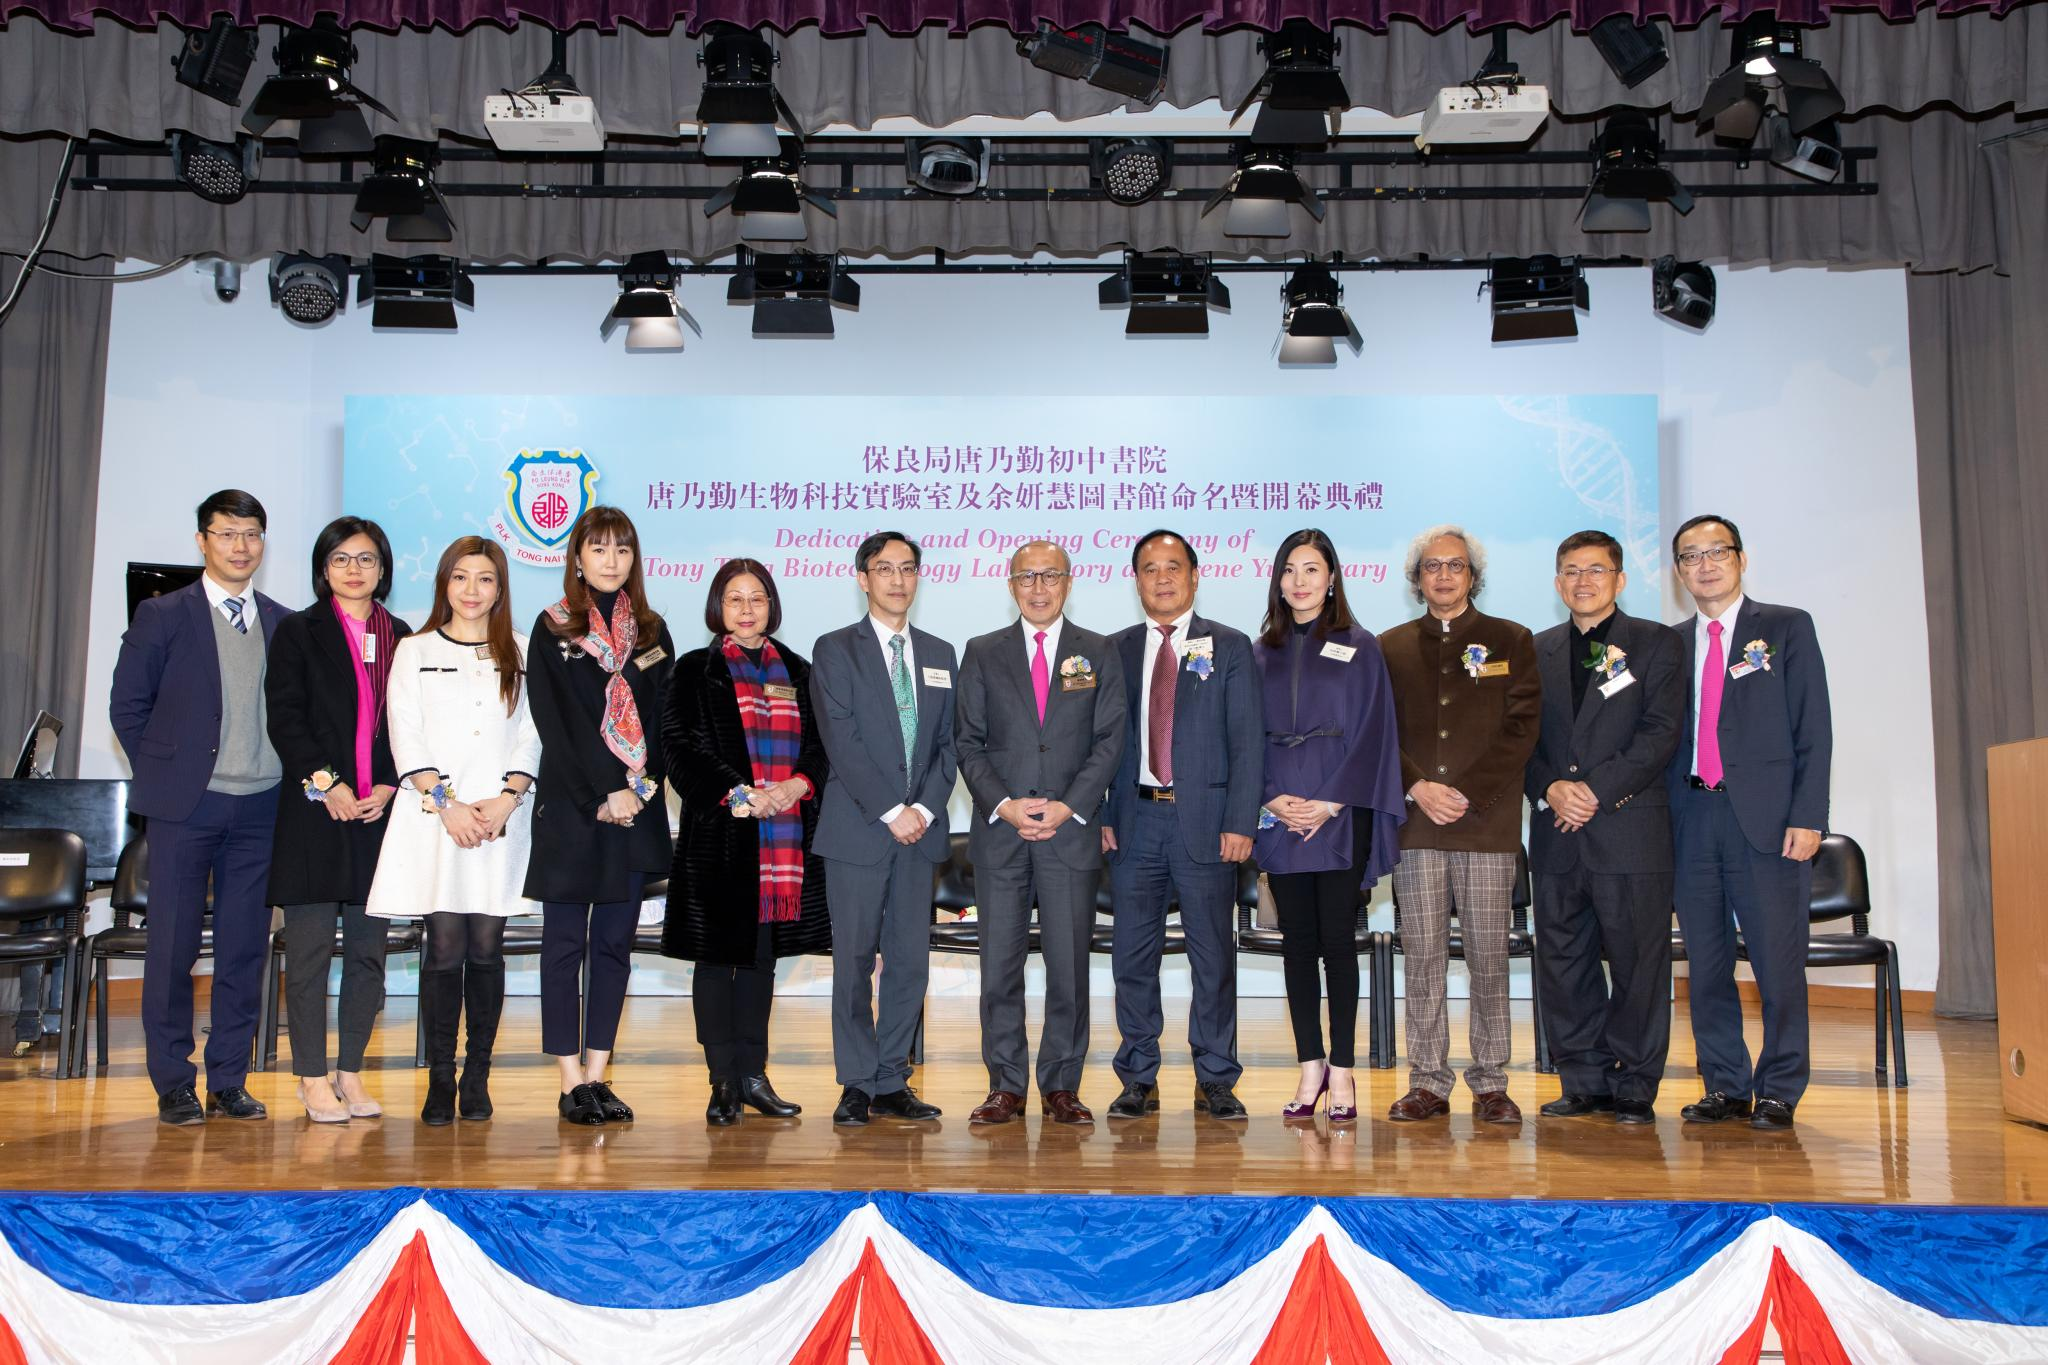 Dedication and Opening Ceremony of Tony Tong Biotechnology Laboratory and Irene Yu Library